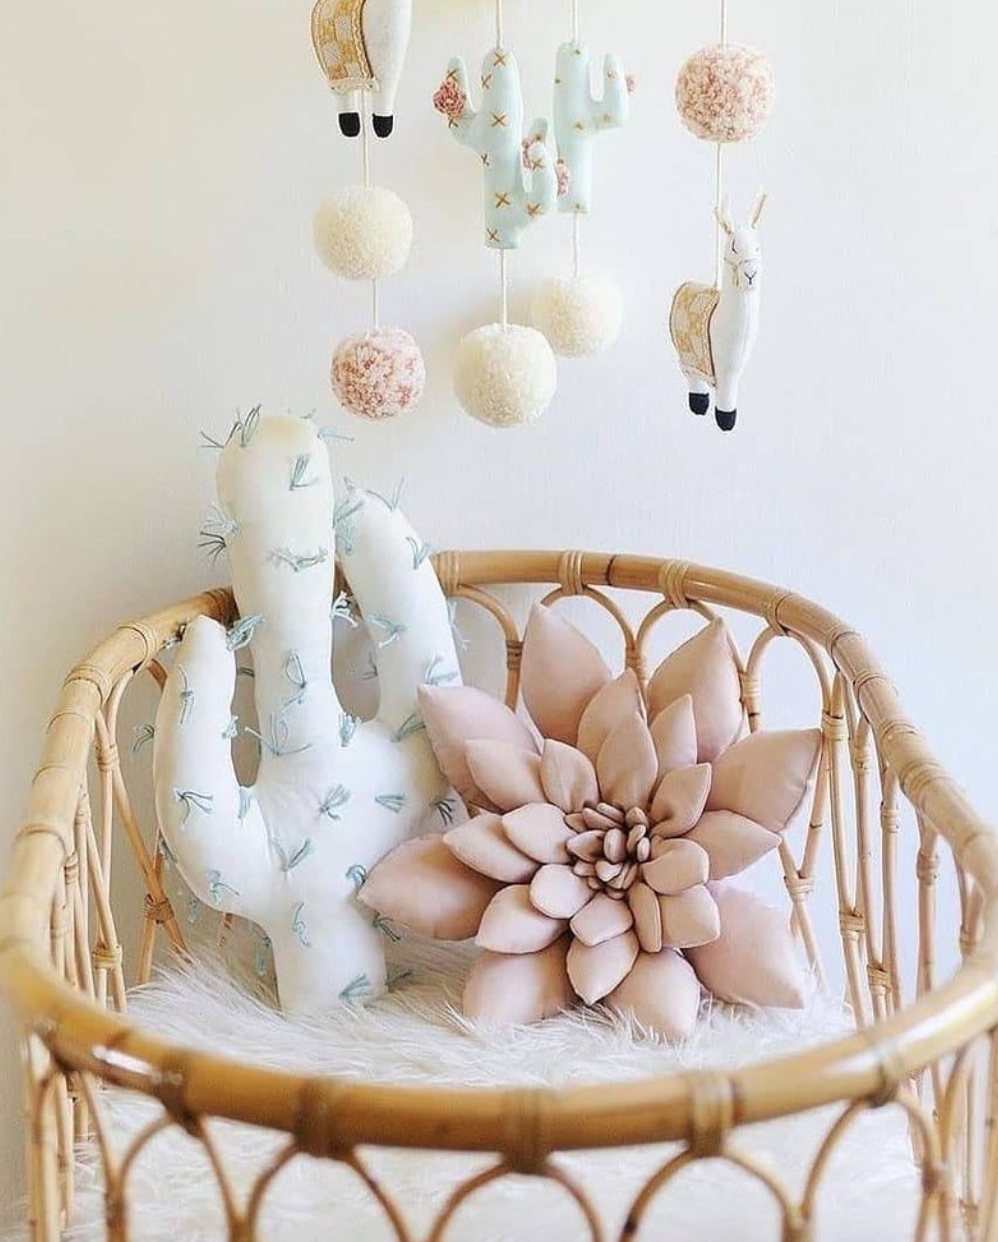 Rattan Bassinet with plush cactus and lotus flower inside.